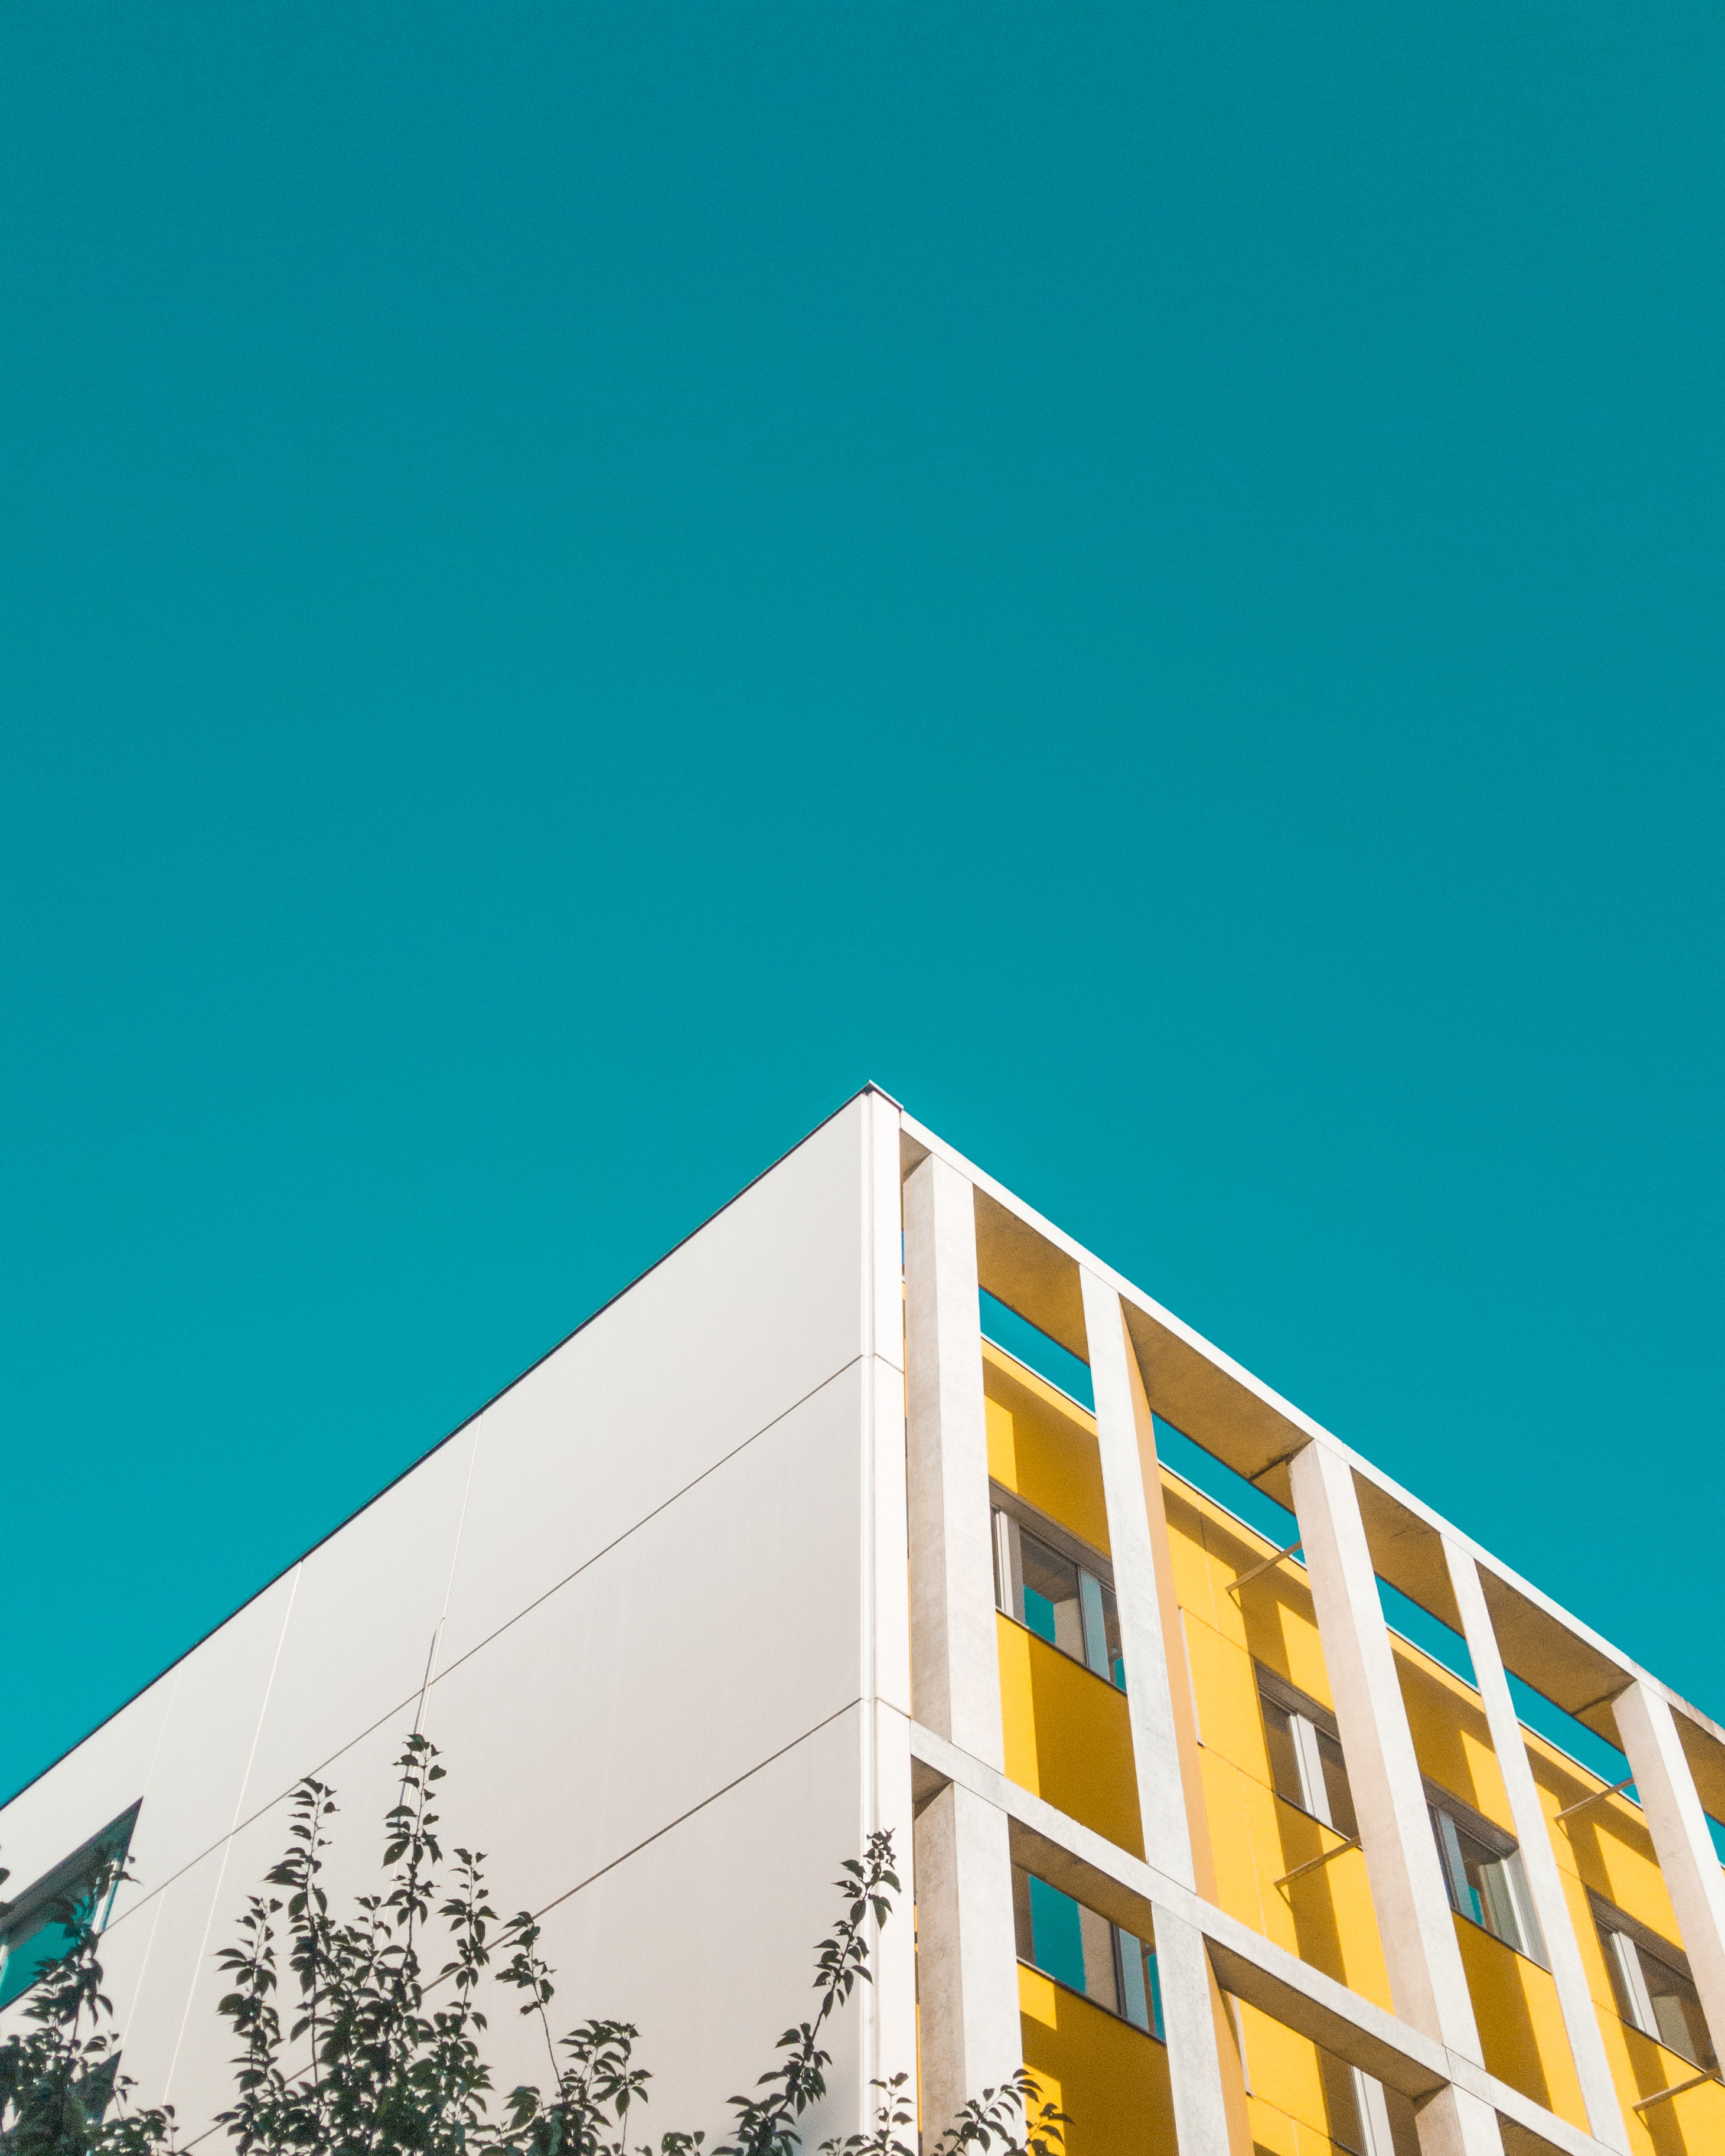 low angle photography of white and yellow concrete building